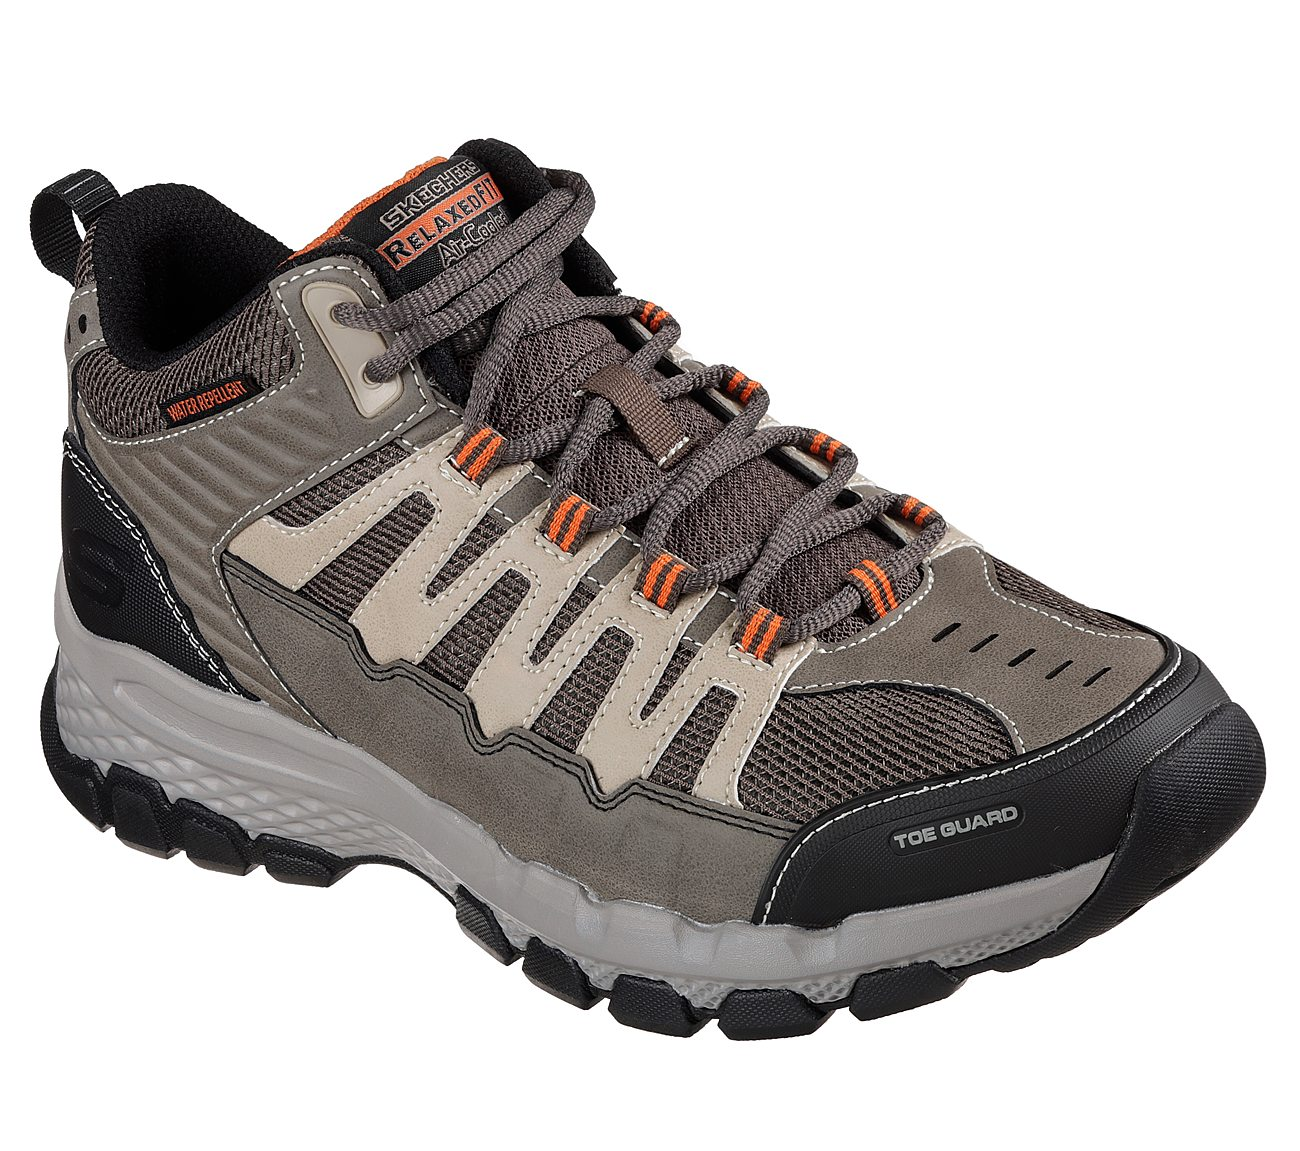 SKECHERS Outland 2.0 - Girvin Sport Shoes